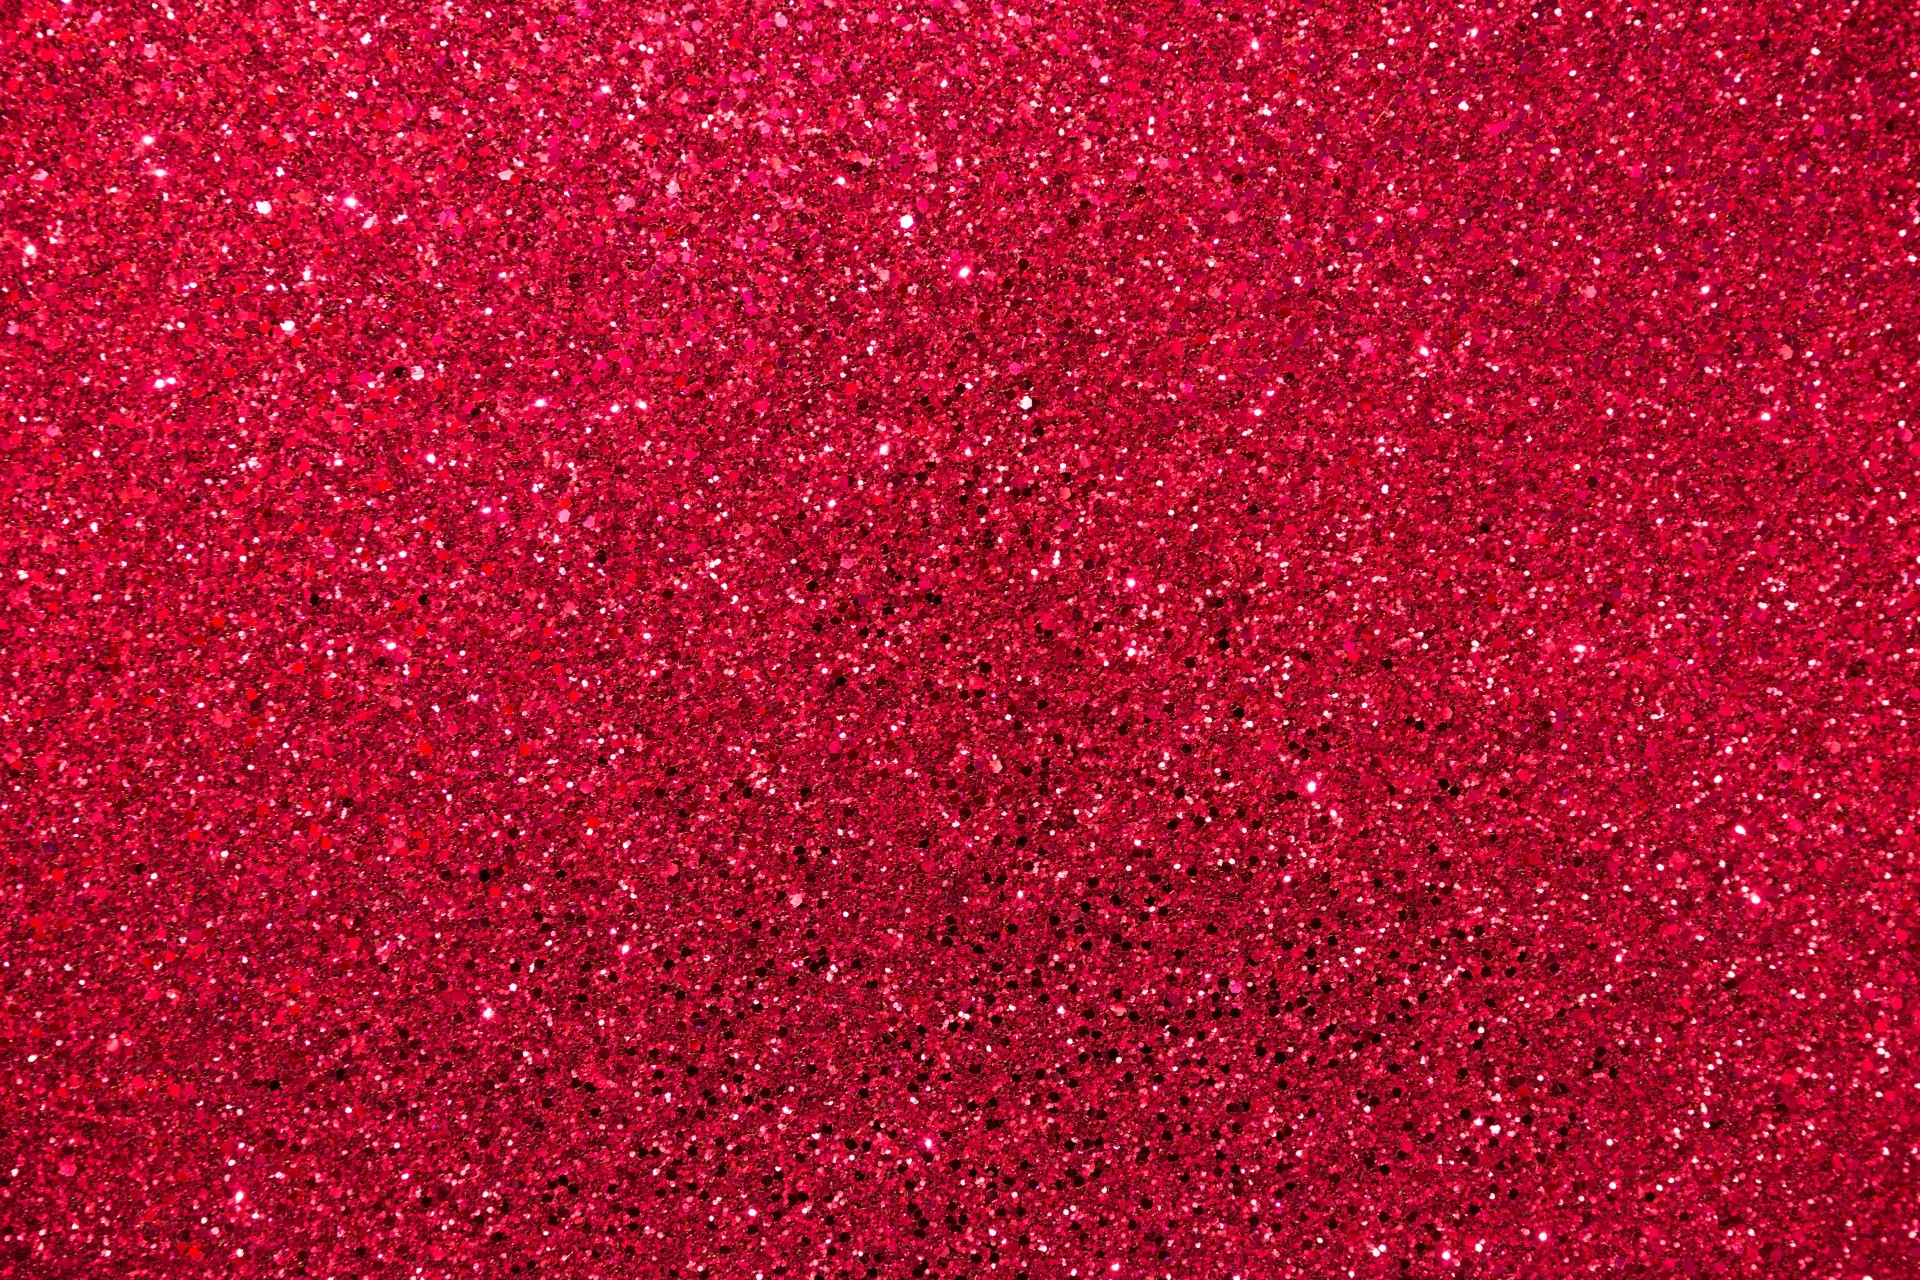 Glitter Background Images ·① WallpaperTag